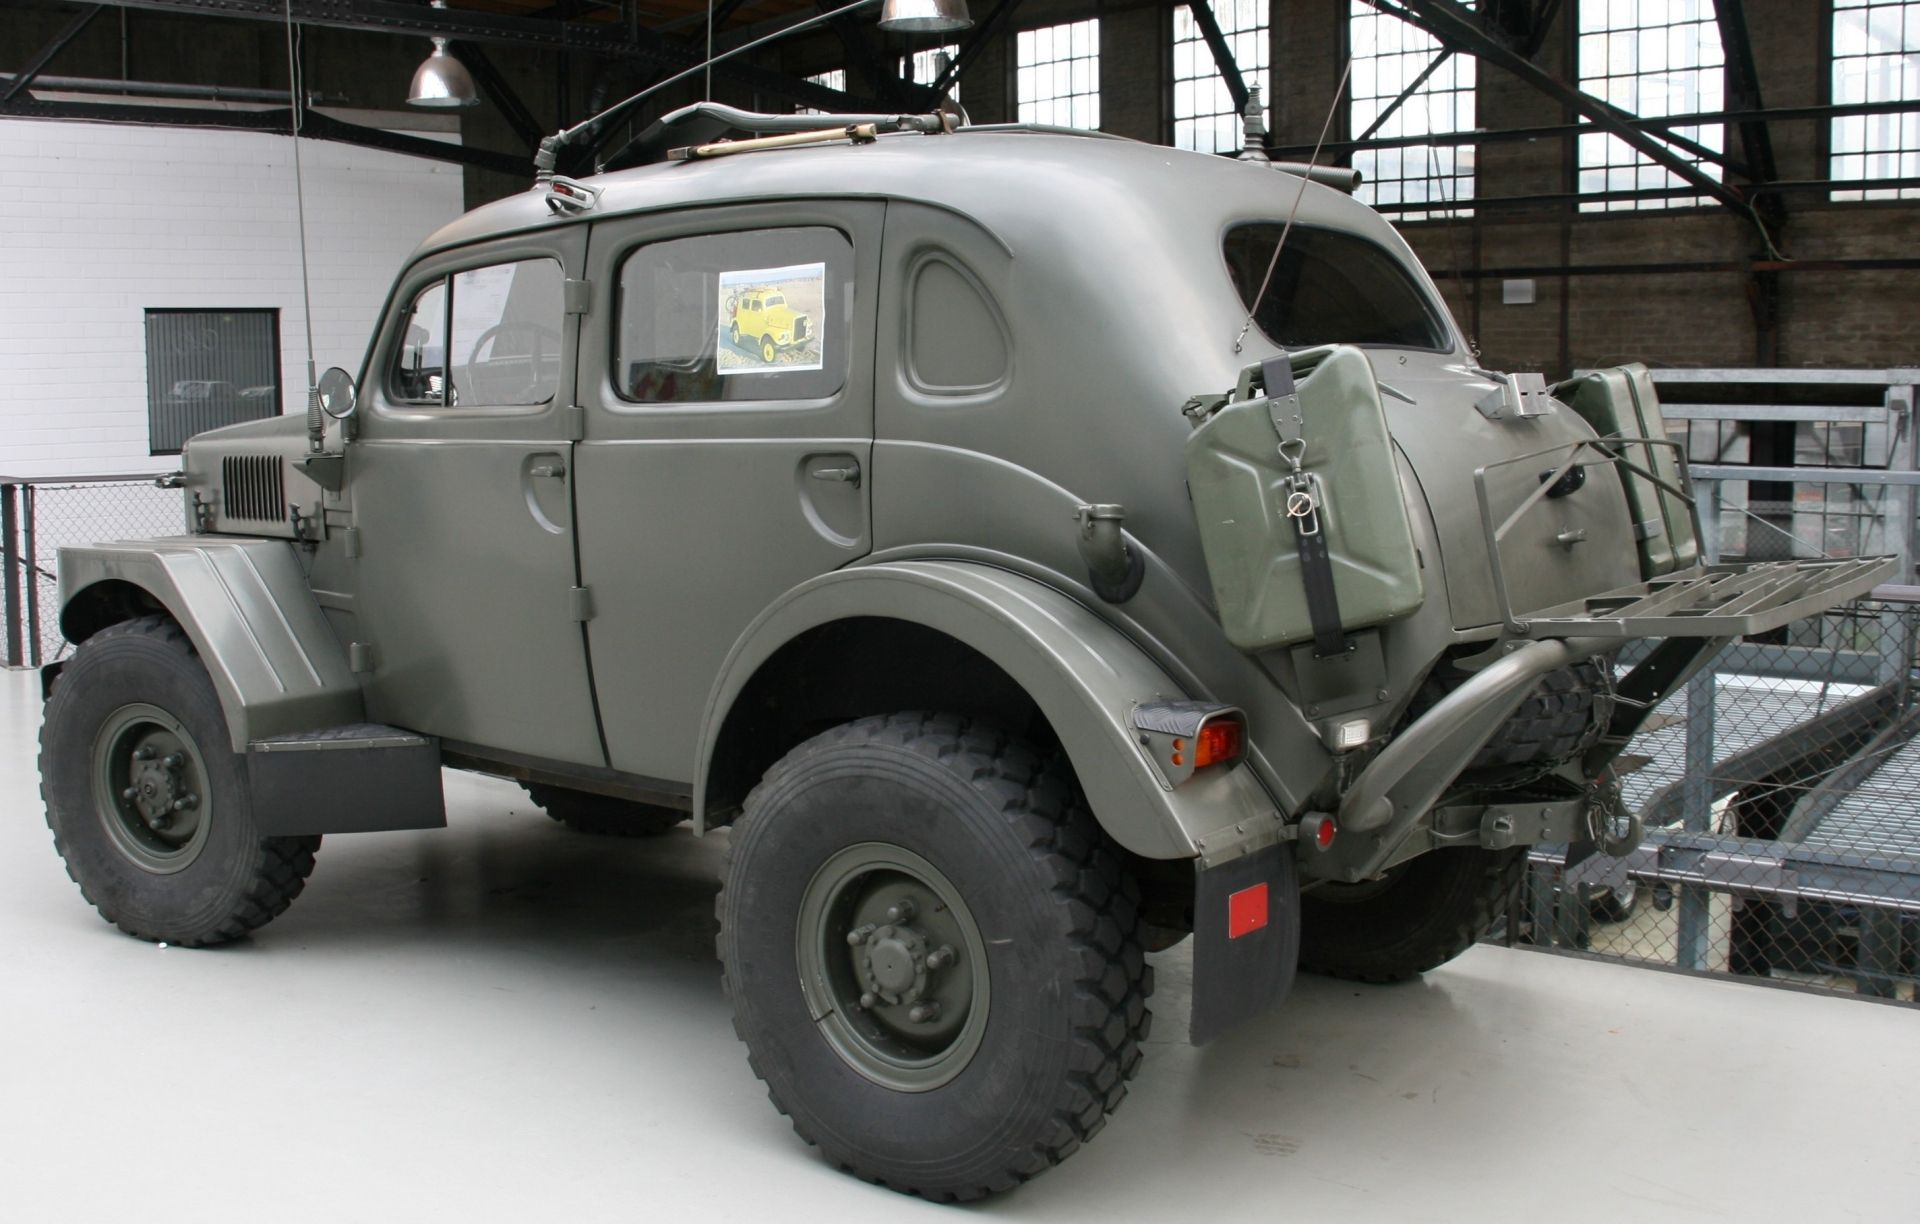 Volvo Tp21 Awesome Post Volvo Military Vehicles Vehicles